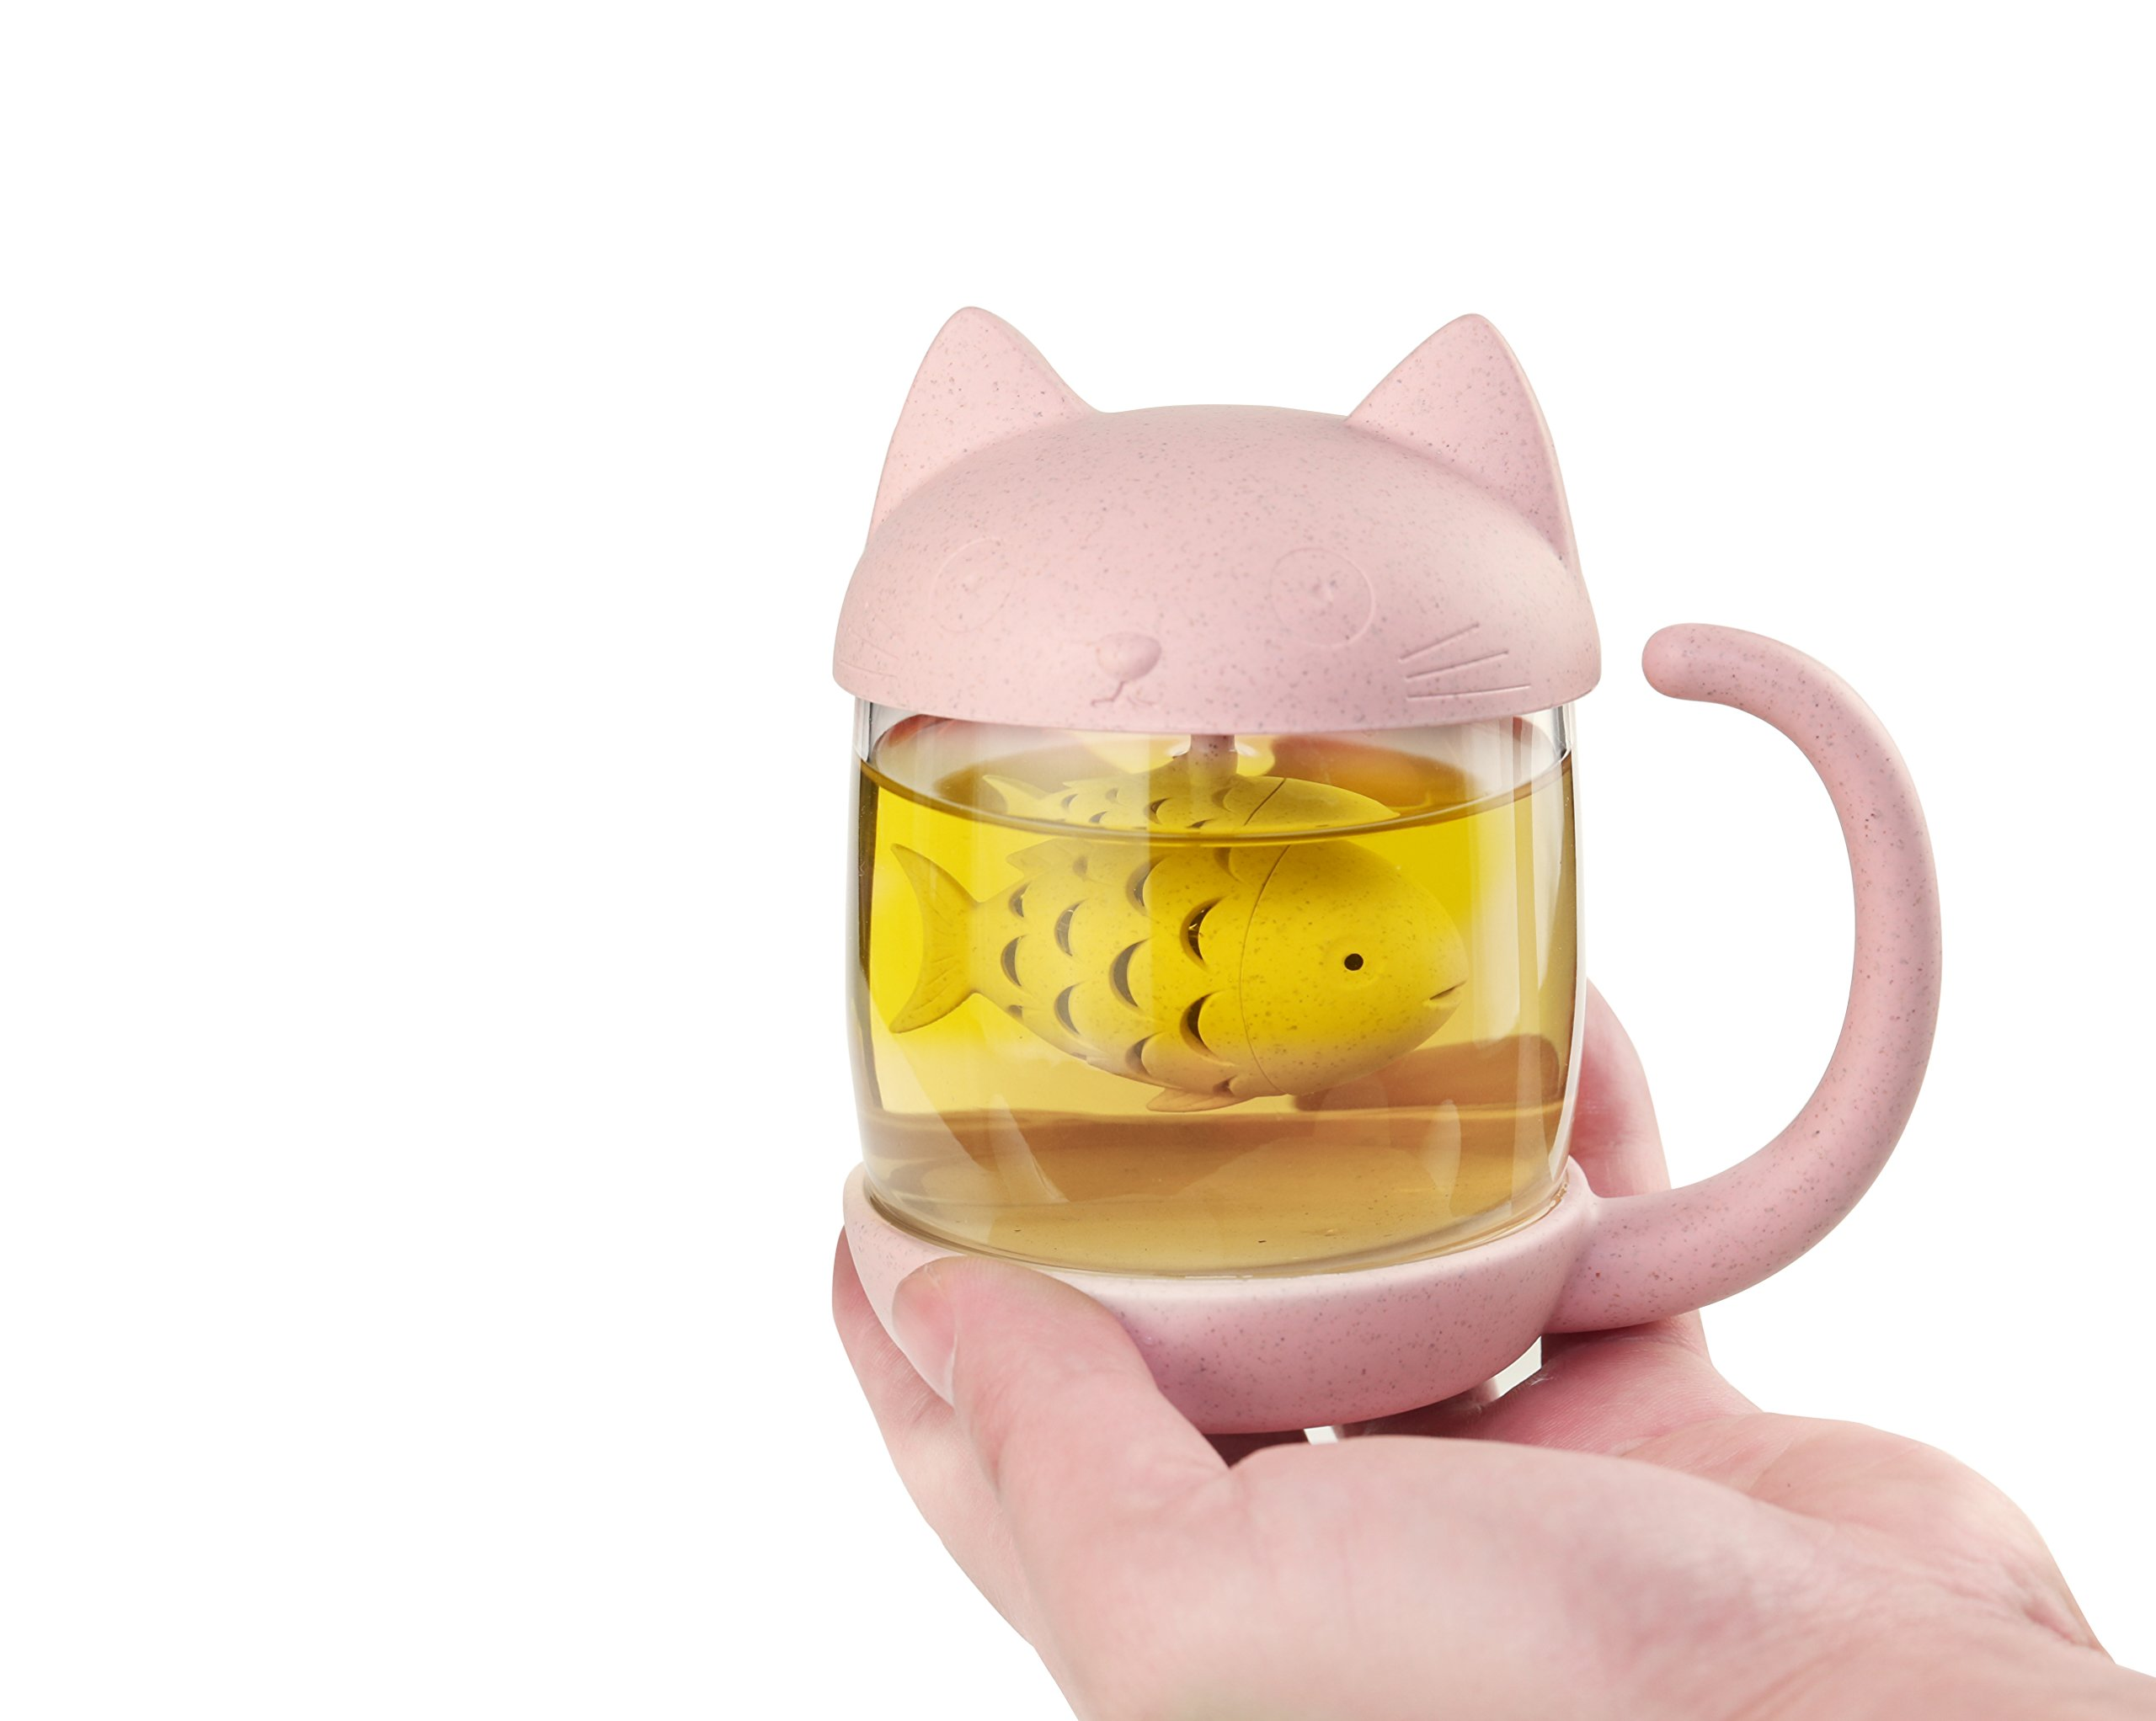 3D Cute Cat Glass Tea Mug; Animal Coffee Mug; Tea Cup With Fish Infuser Filter Strainer;Lovely Kitty Cup ; Novelty ; Home Office Décor (Cute Cat(Pink))